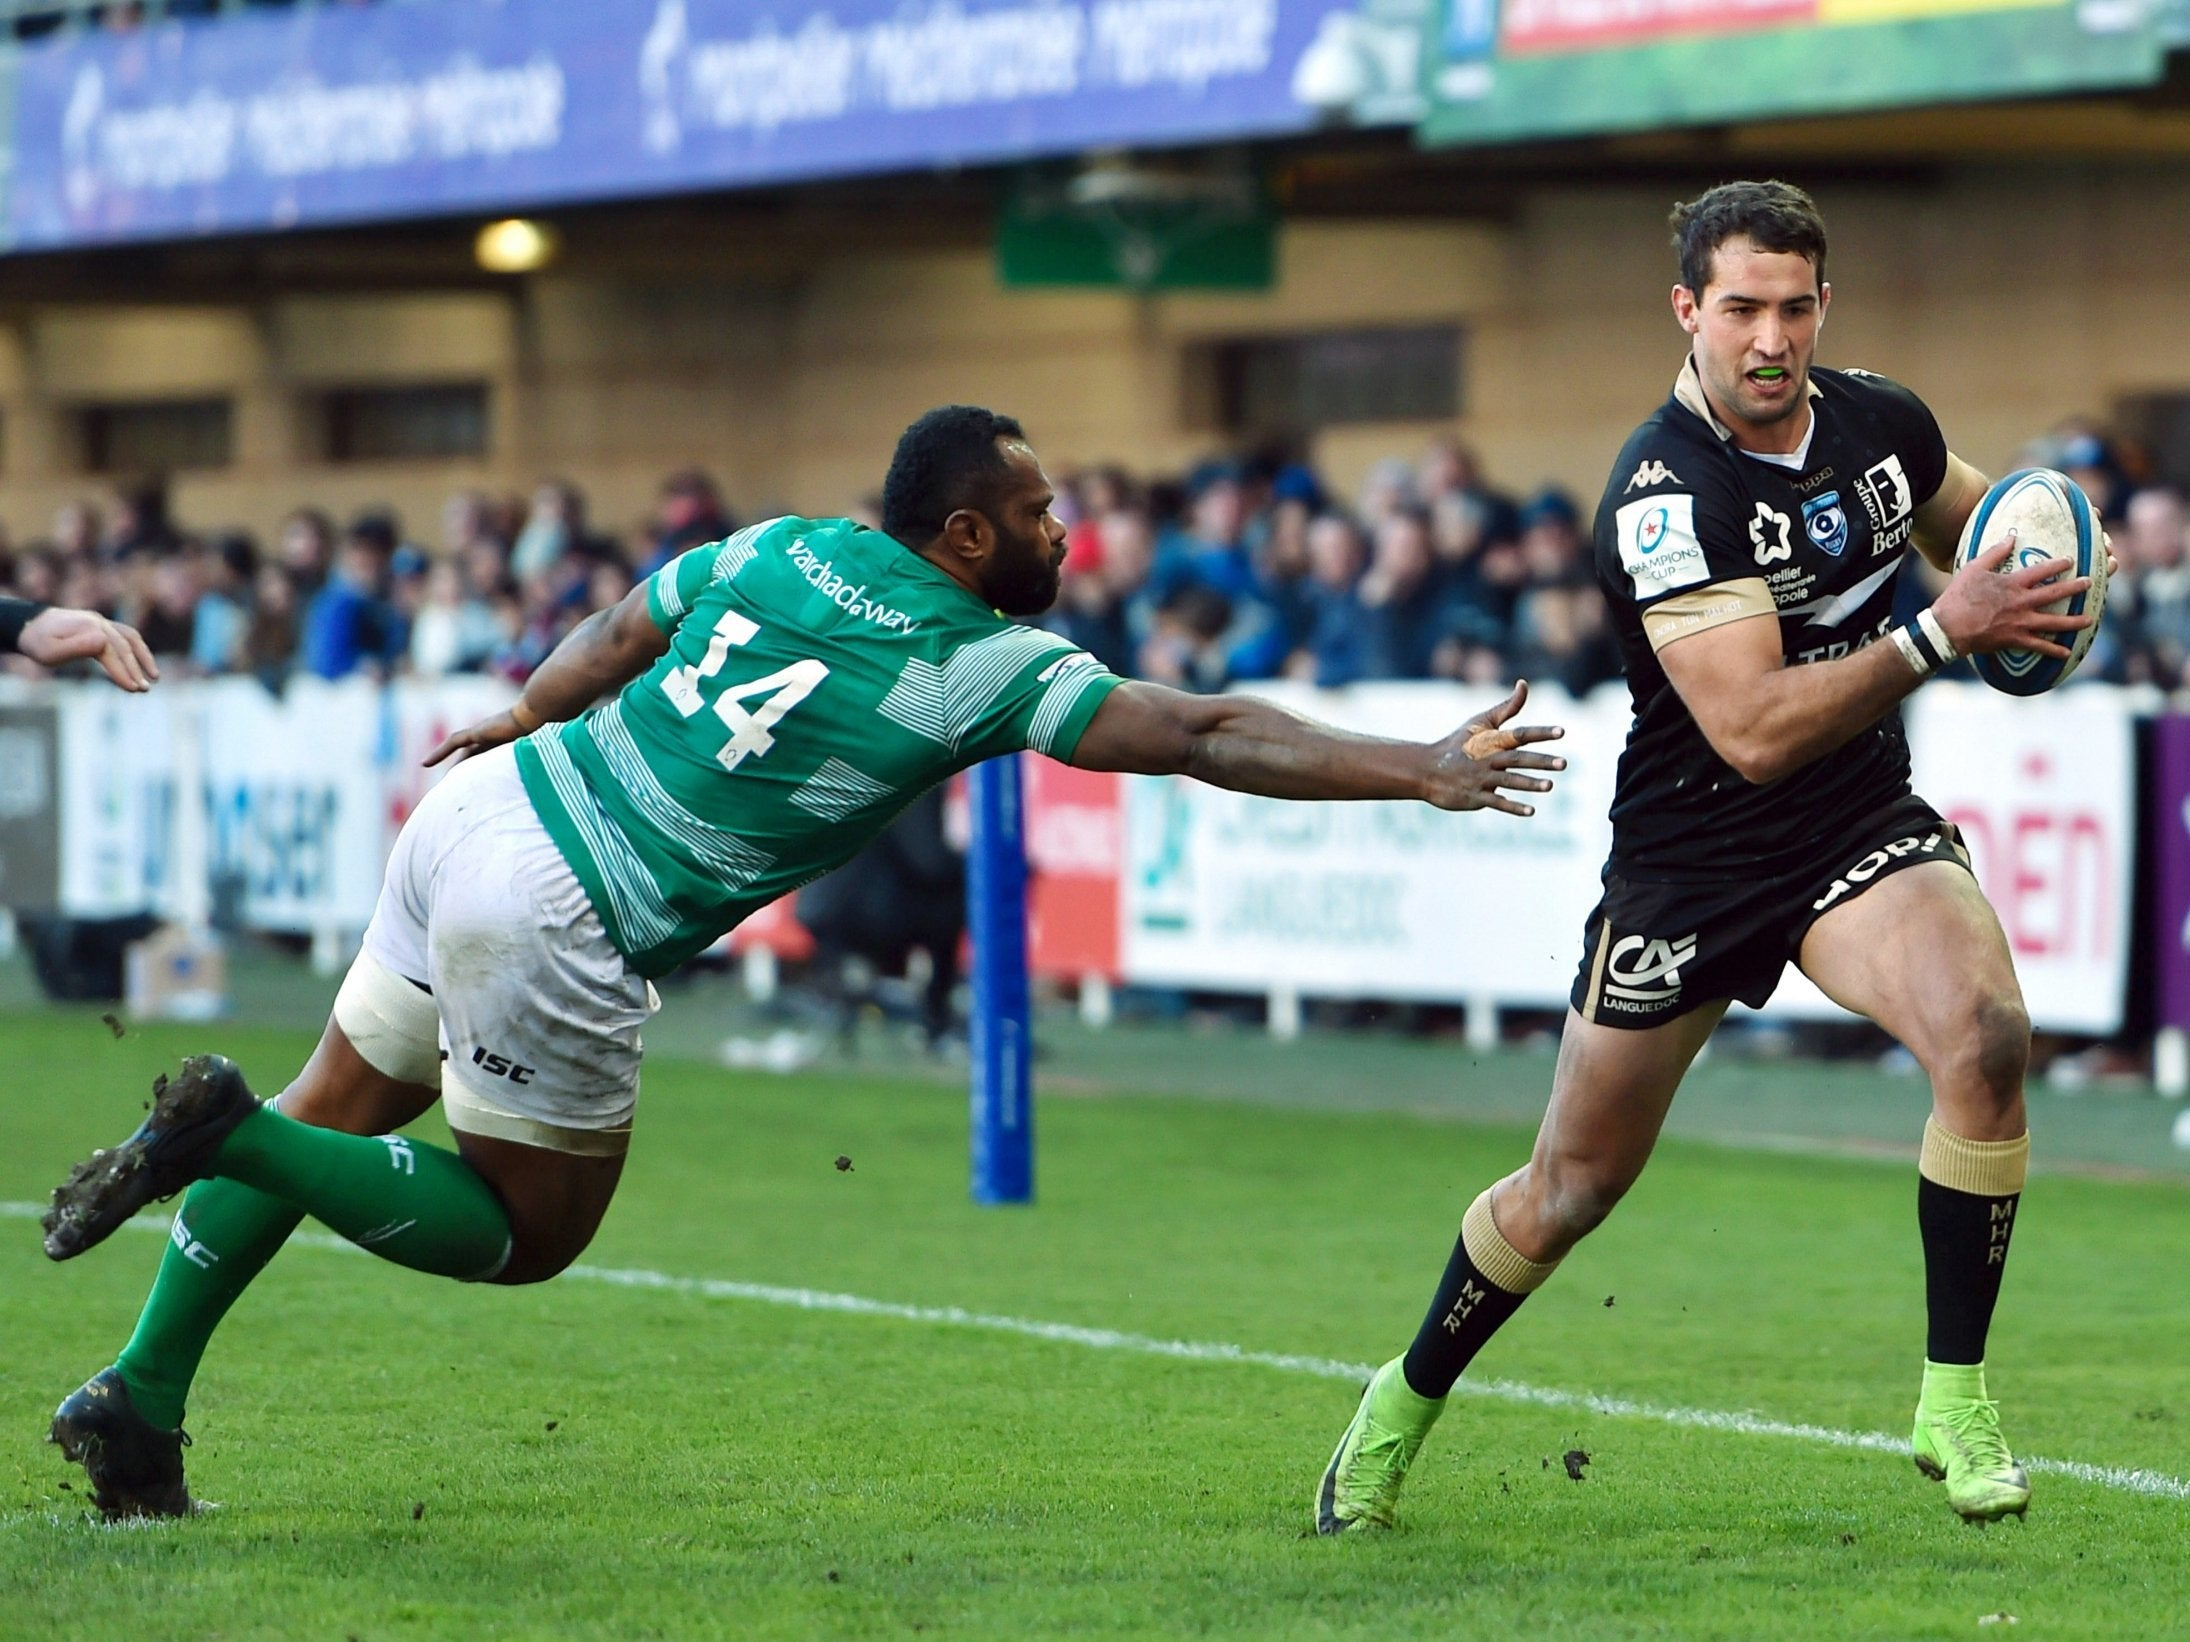 Newcastle Falcons see their Heineken Champions Cup hopes end in heavy defeat by Montpellier